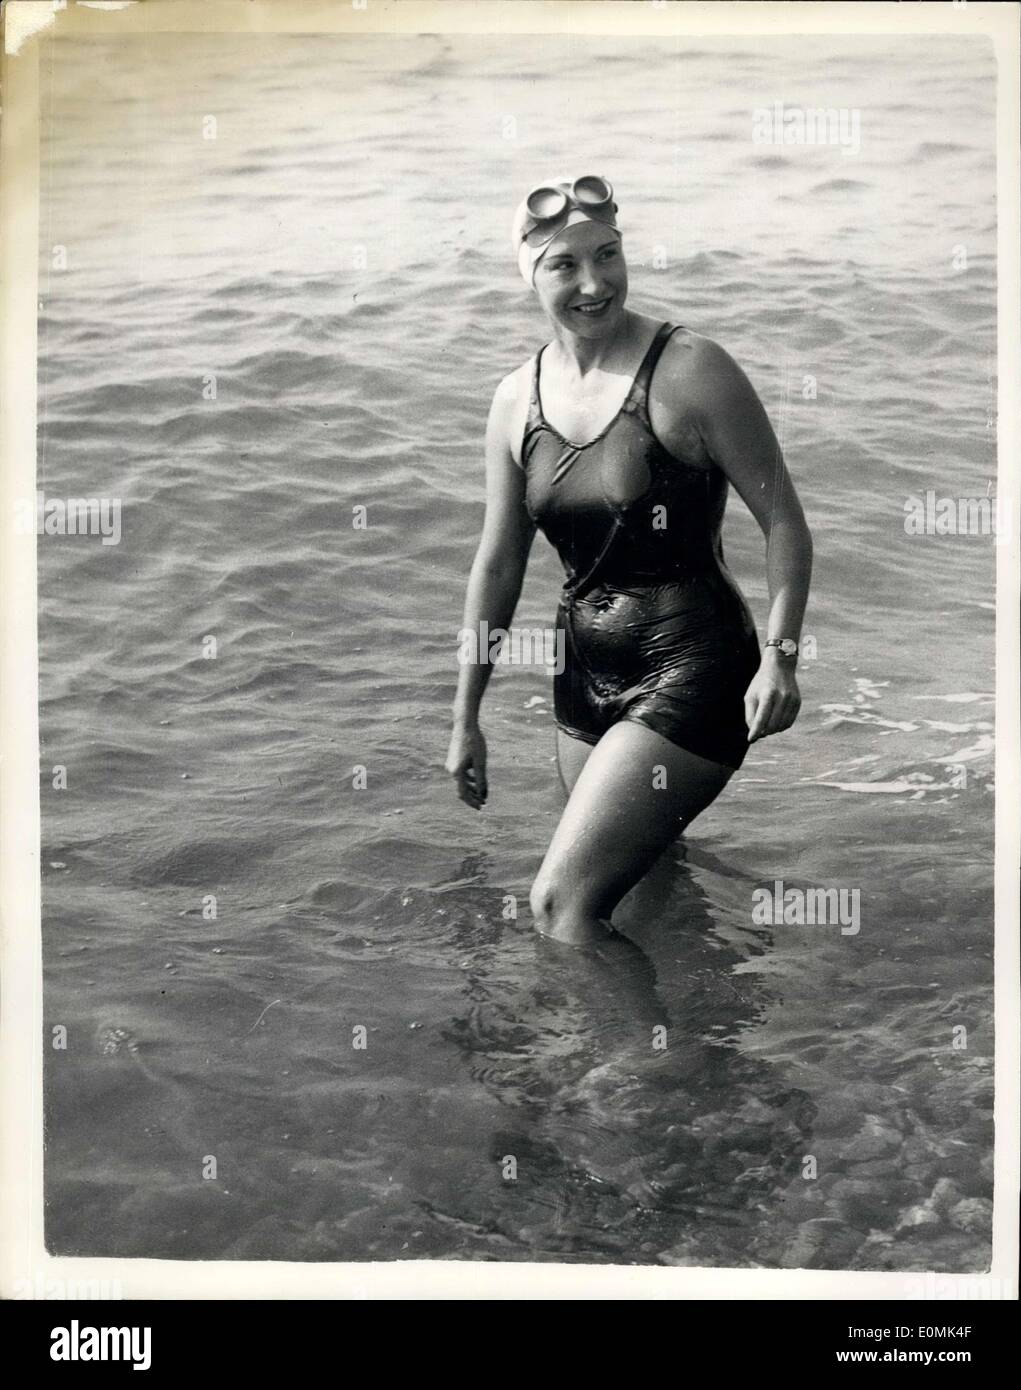 Sep. 23, 1955 - Florence Chadwick Attempts Two-Way Channel Swim: With a thunderstorm in the Channel, Miss Florence Chadwick, the 35-year-old Californian set off early today on an England to France and back non-stop swim. She is the only woman to have beaten the Channel in both directions - from France in 1950 and from England in 1953. She also hopes to beat the England to France official record of 14 hours 6 minutes set up by Bloxwich baths manager Bill Pickering. Photo shows Florence Chadwick who started her attempt to swim the Channel both ways non-stop today. - Stock Image